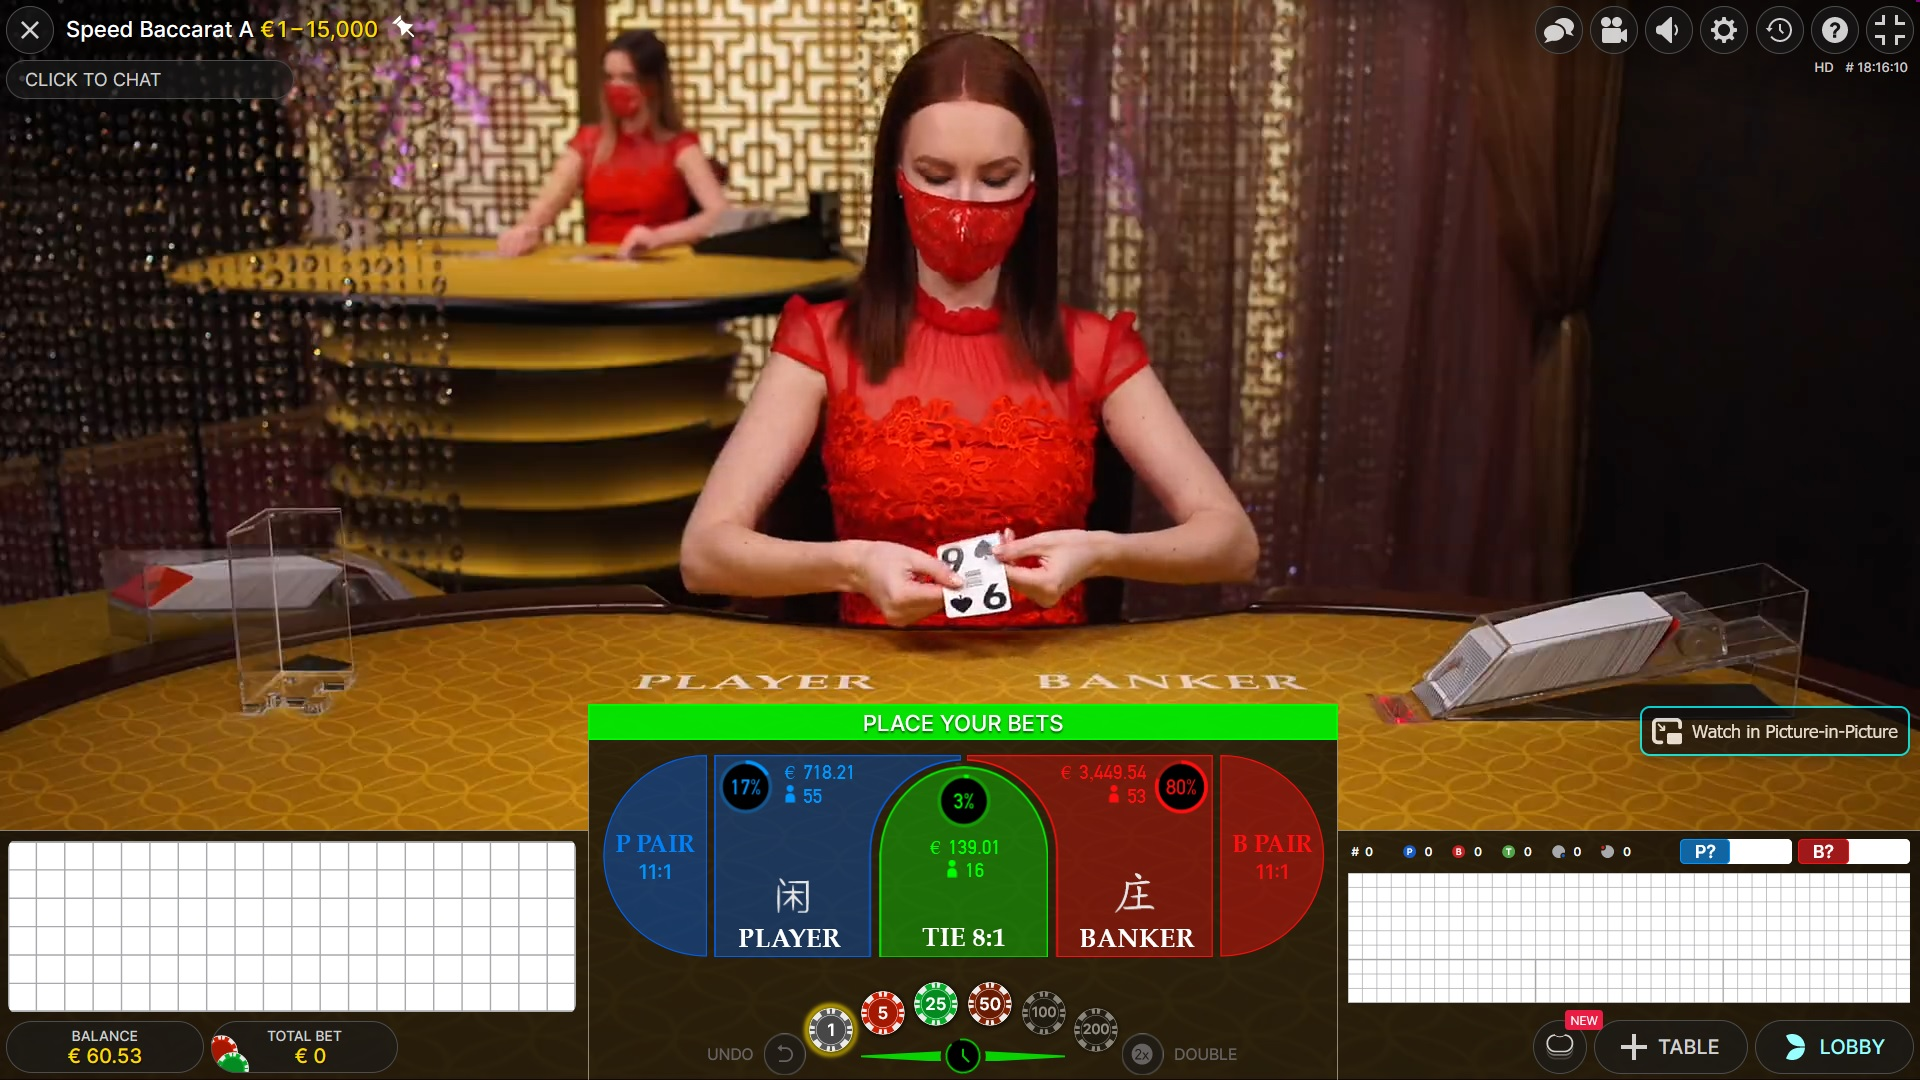 Speed Baccarat from Evoultion Gaming